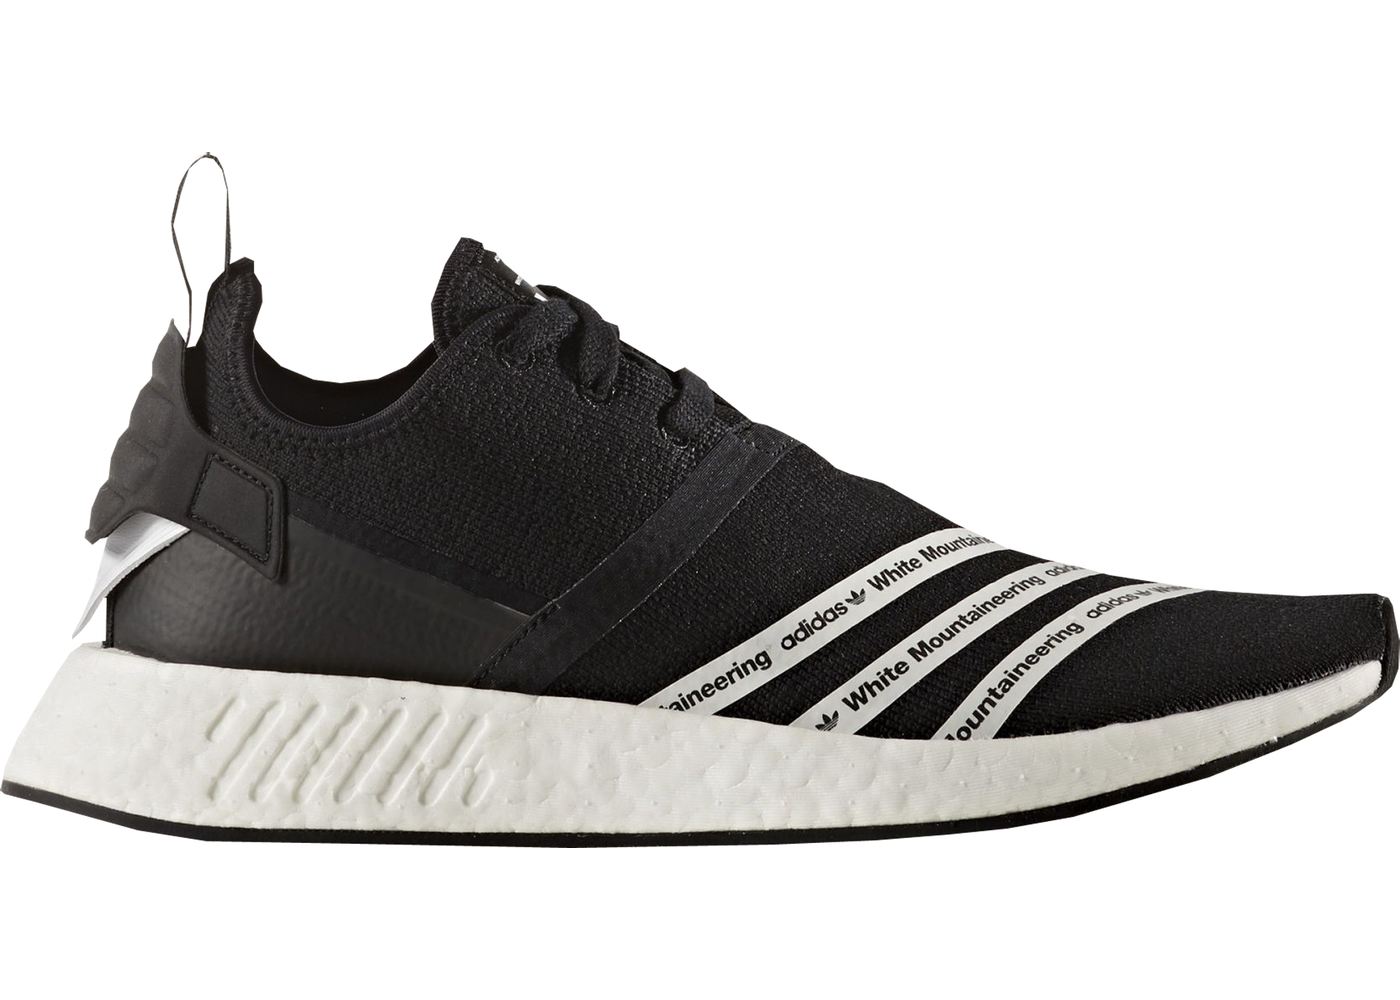 high quality The adidas NMD R2 Primeknit Is Coming Soon